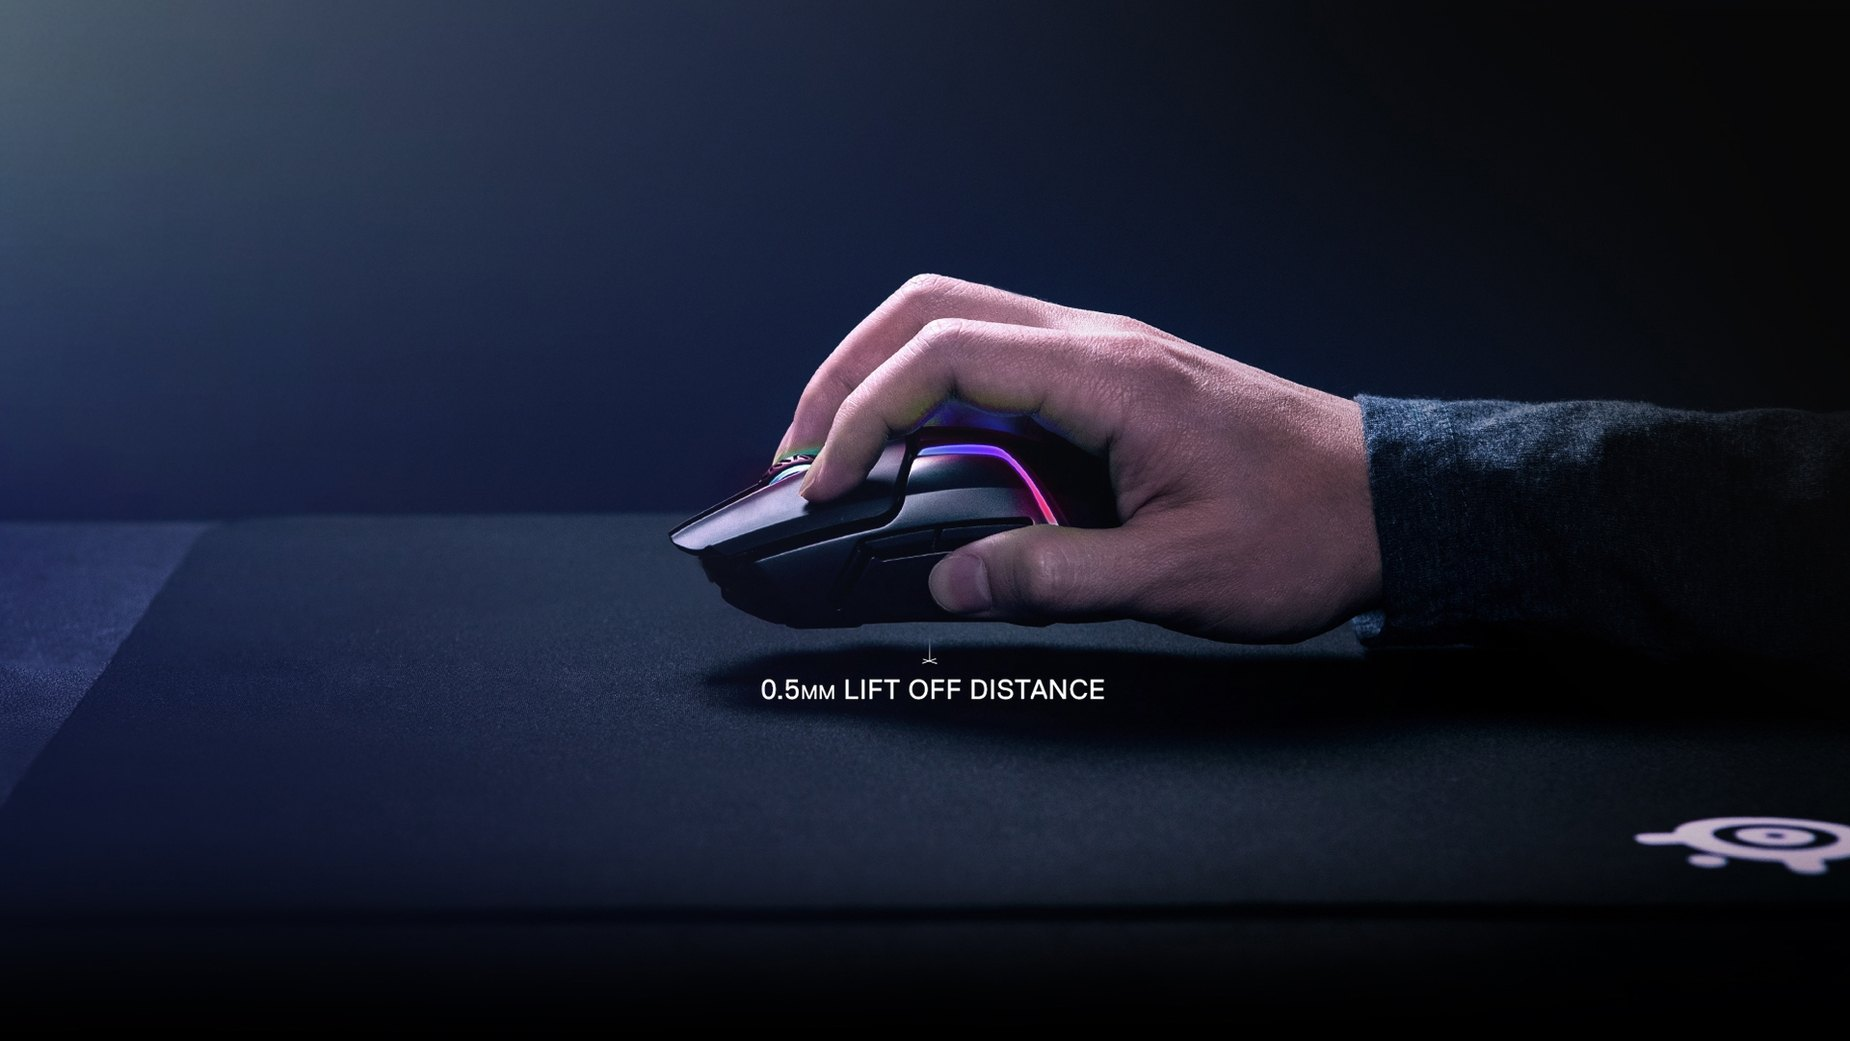 Hand holding Rival 650 Wireless above table to show 0.5mm liftoff distance